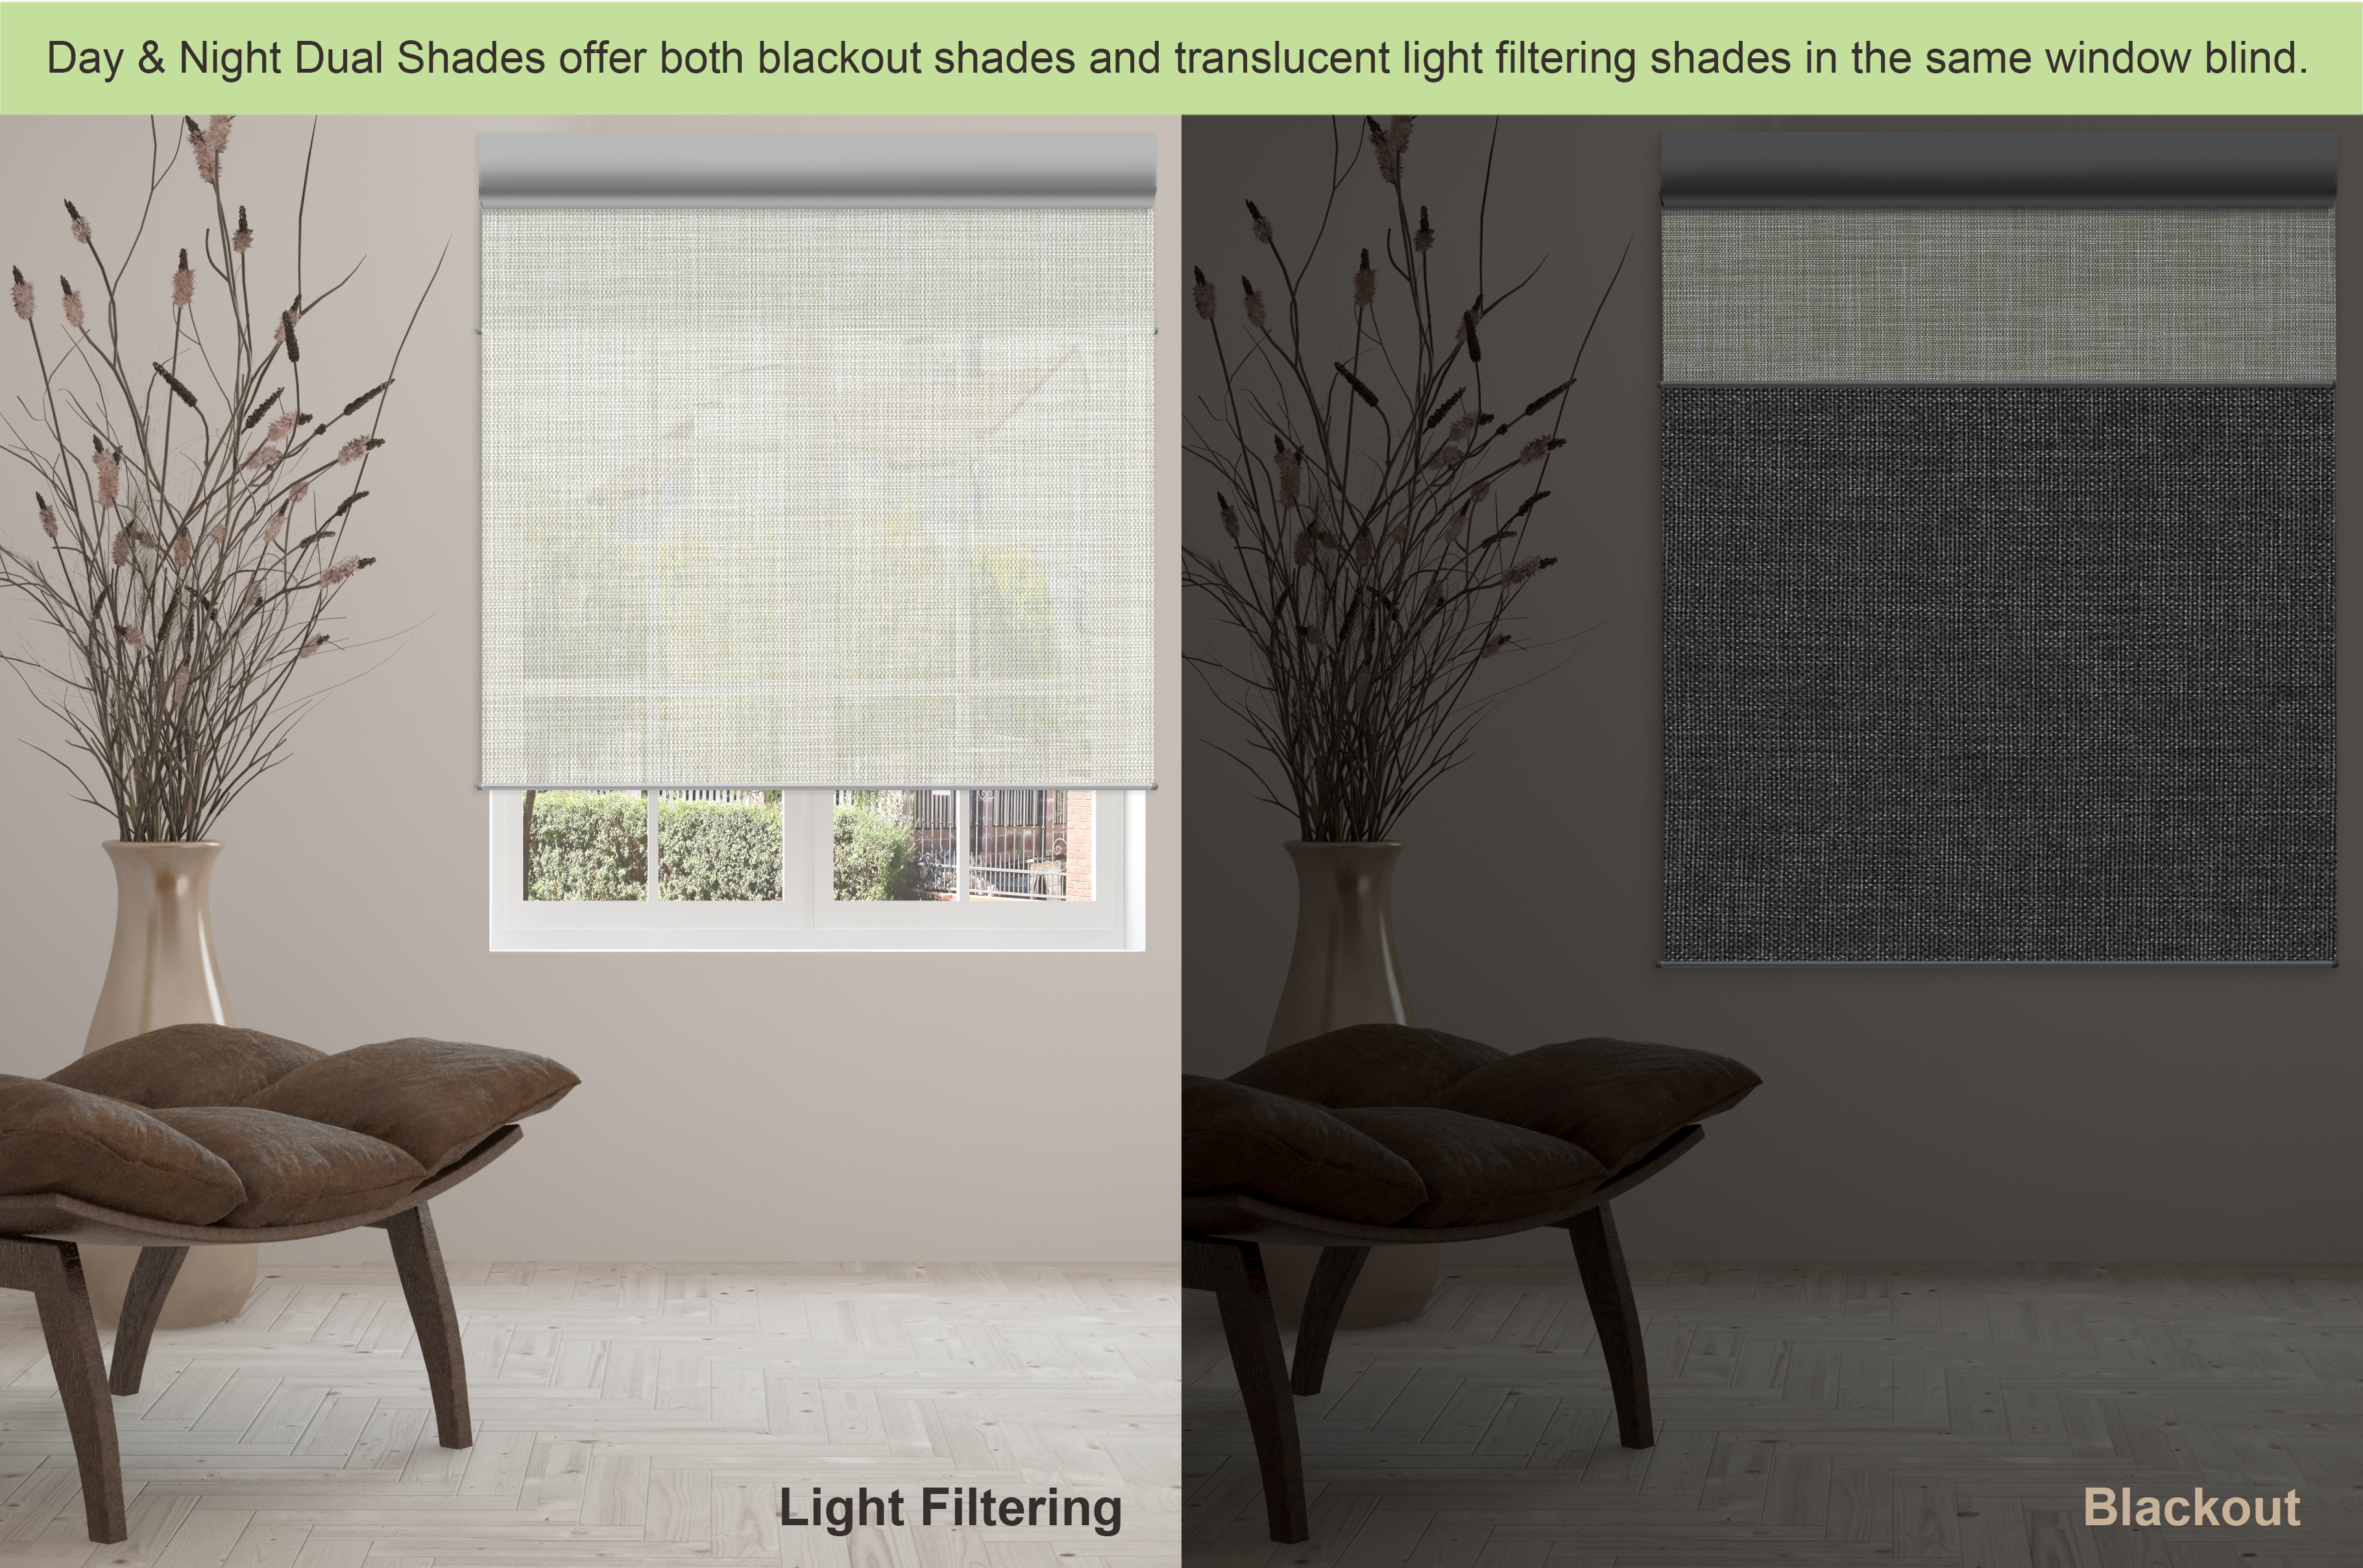 springblinds-day-and-night-shades-white-black-out-window-valance.jpg